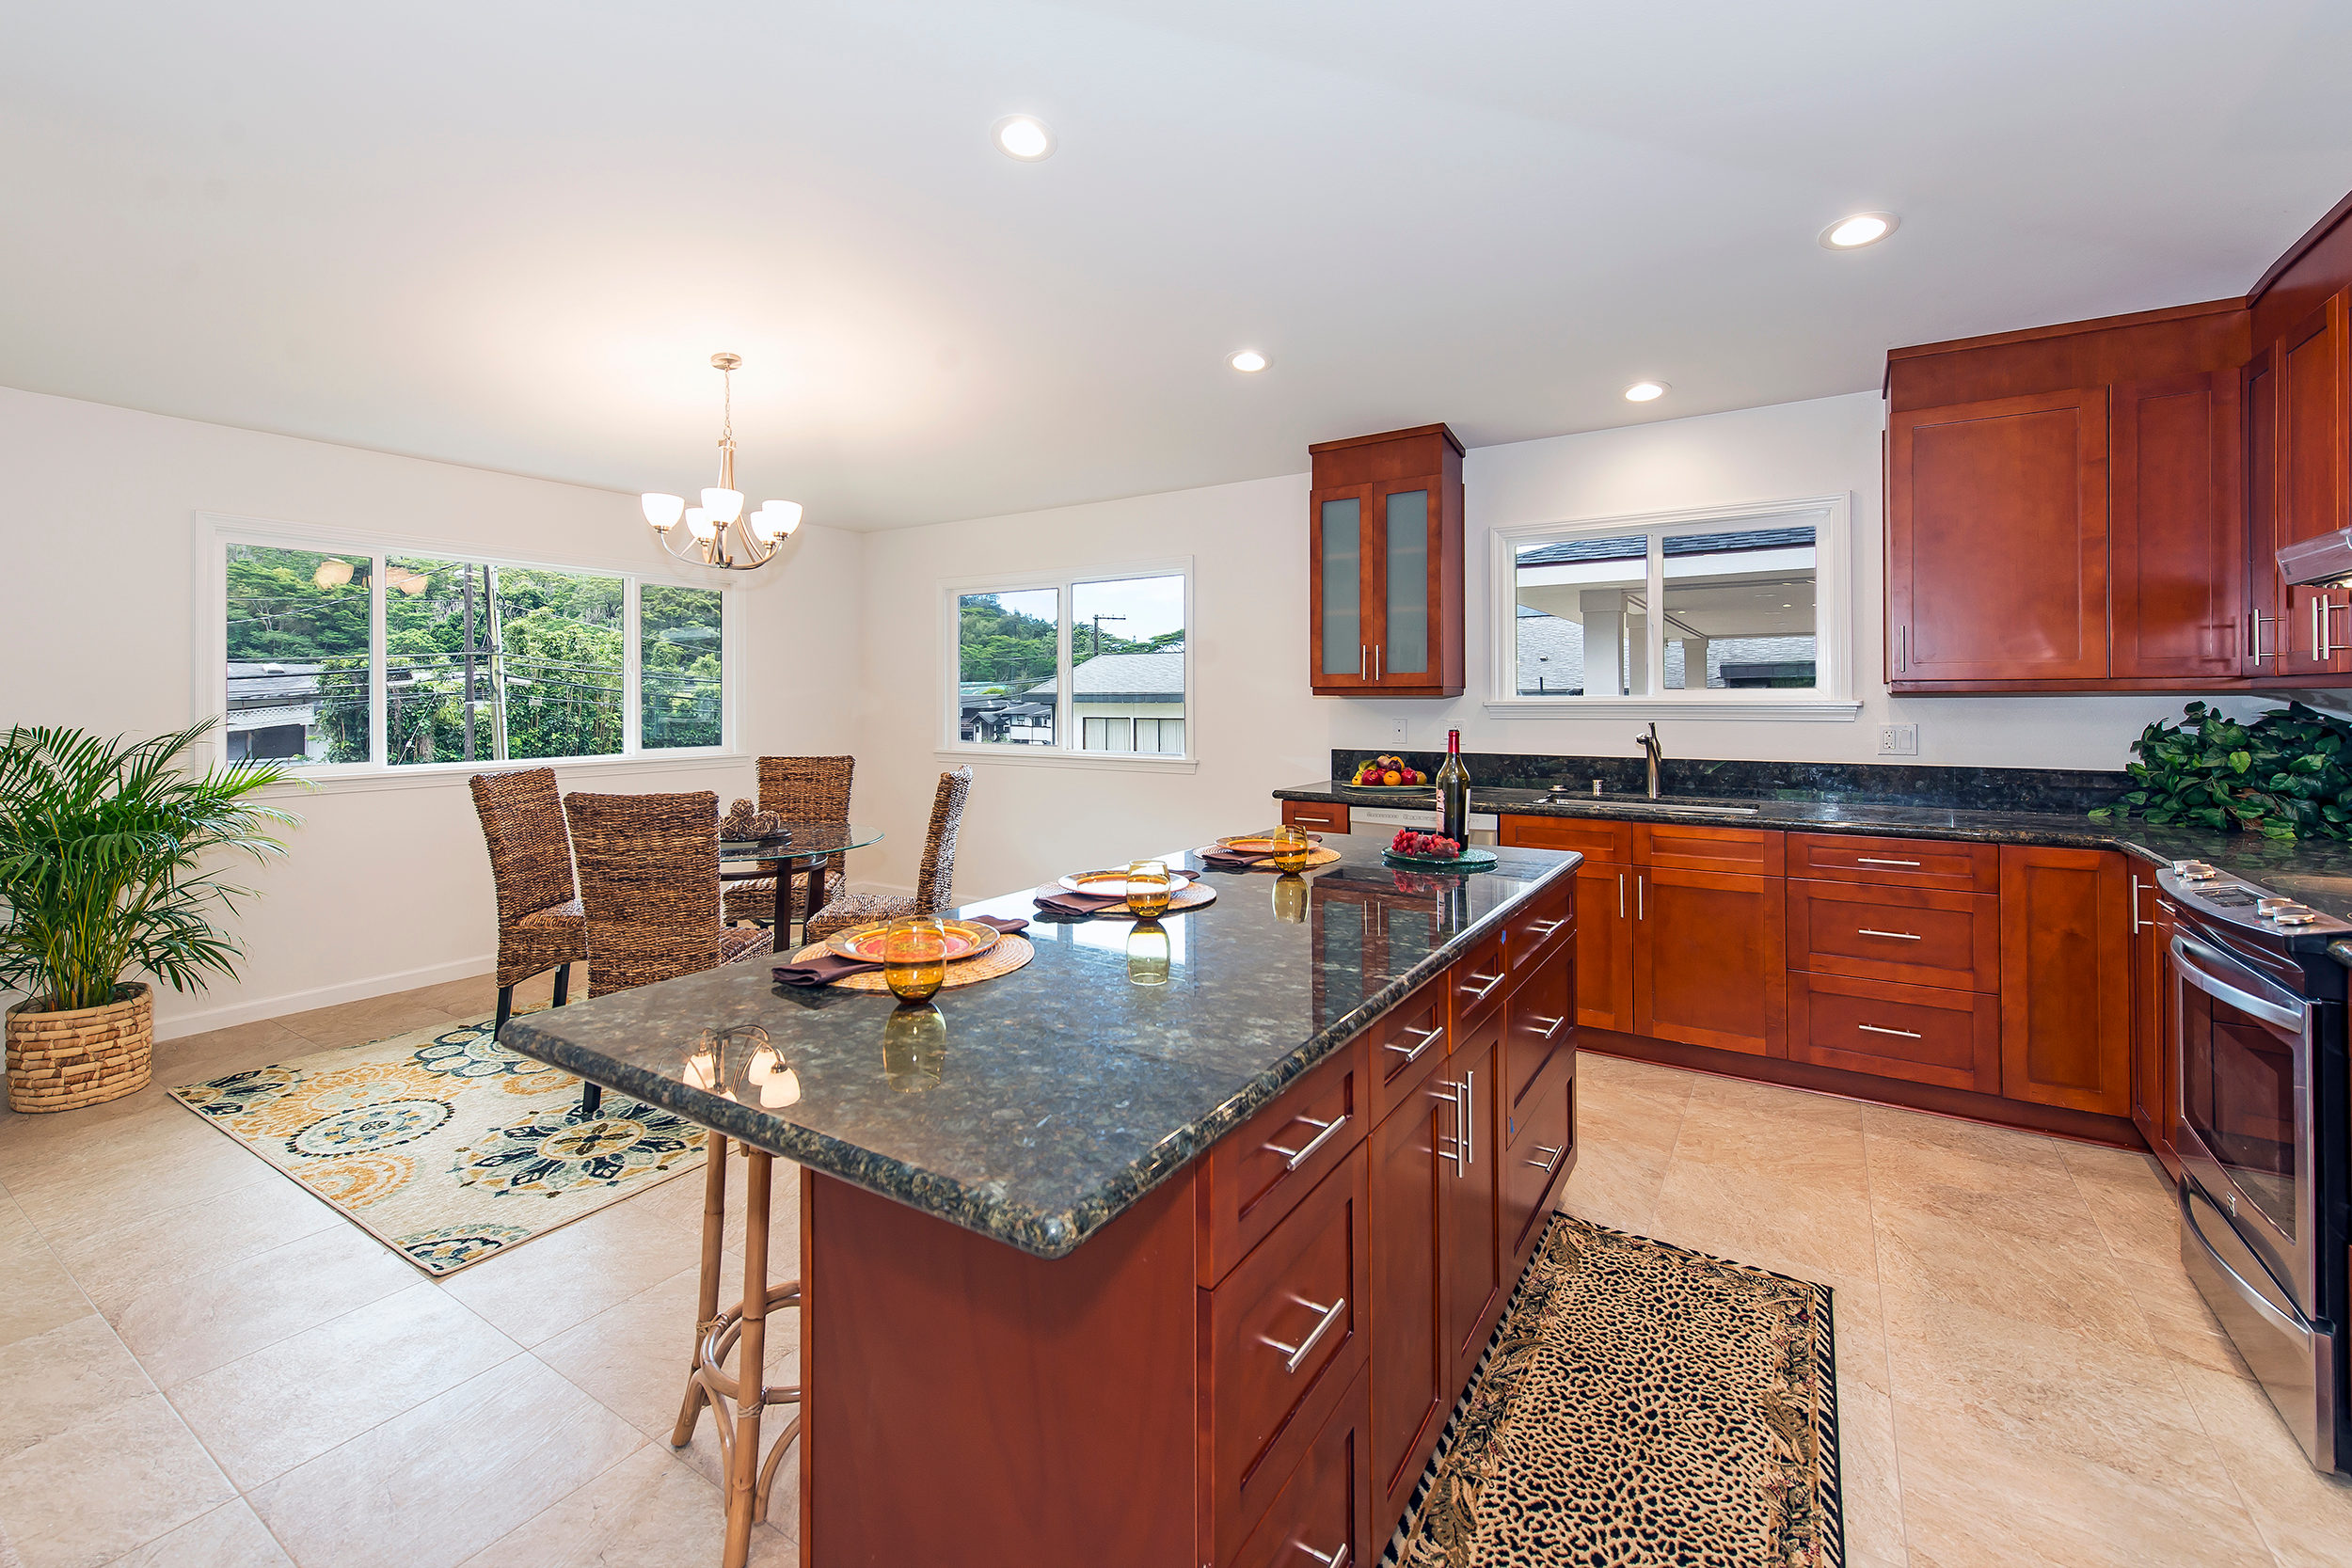 Single Family Home for Sale at Tranquil Island Home 3586 Kalihi Street Kalihi Valley, Honolulu, Hawaii 96819 United States